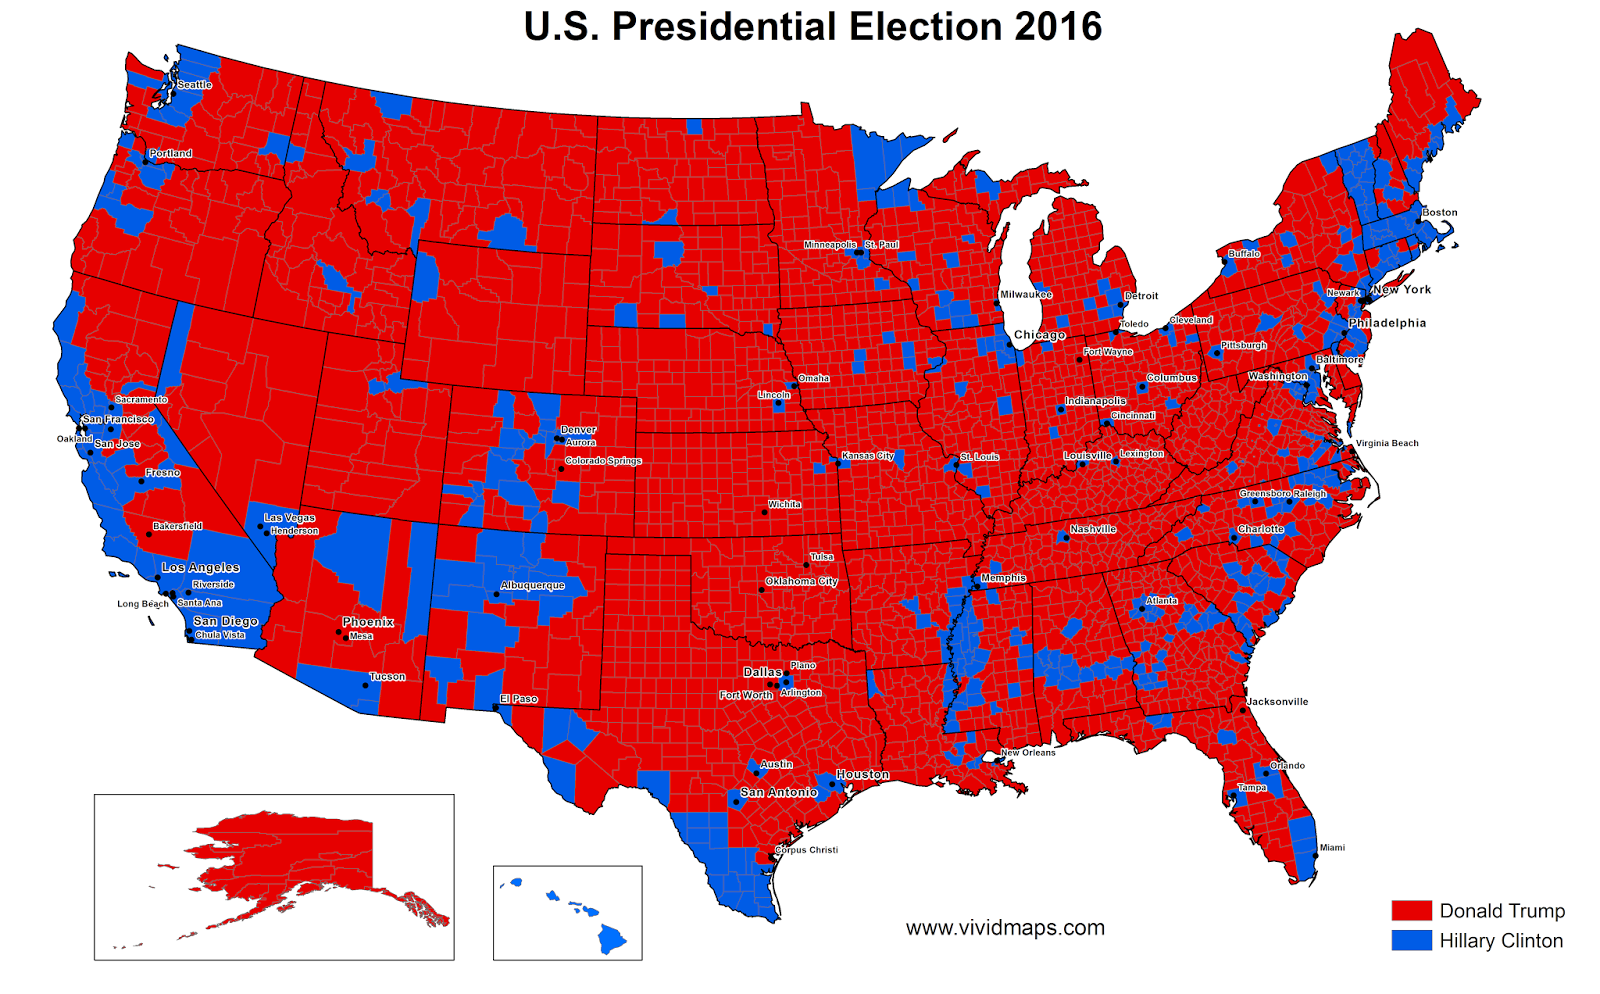 U.S. presidential election results by county: Clinton vs Trump